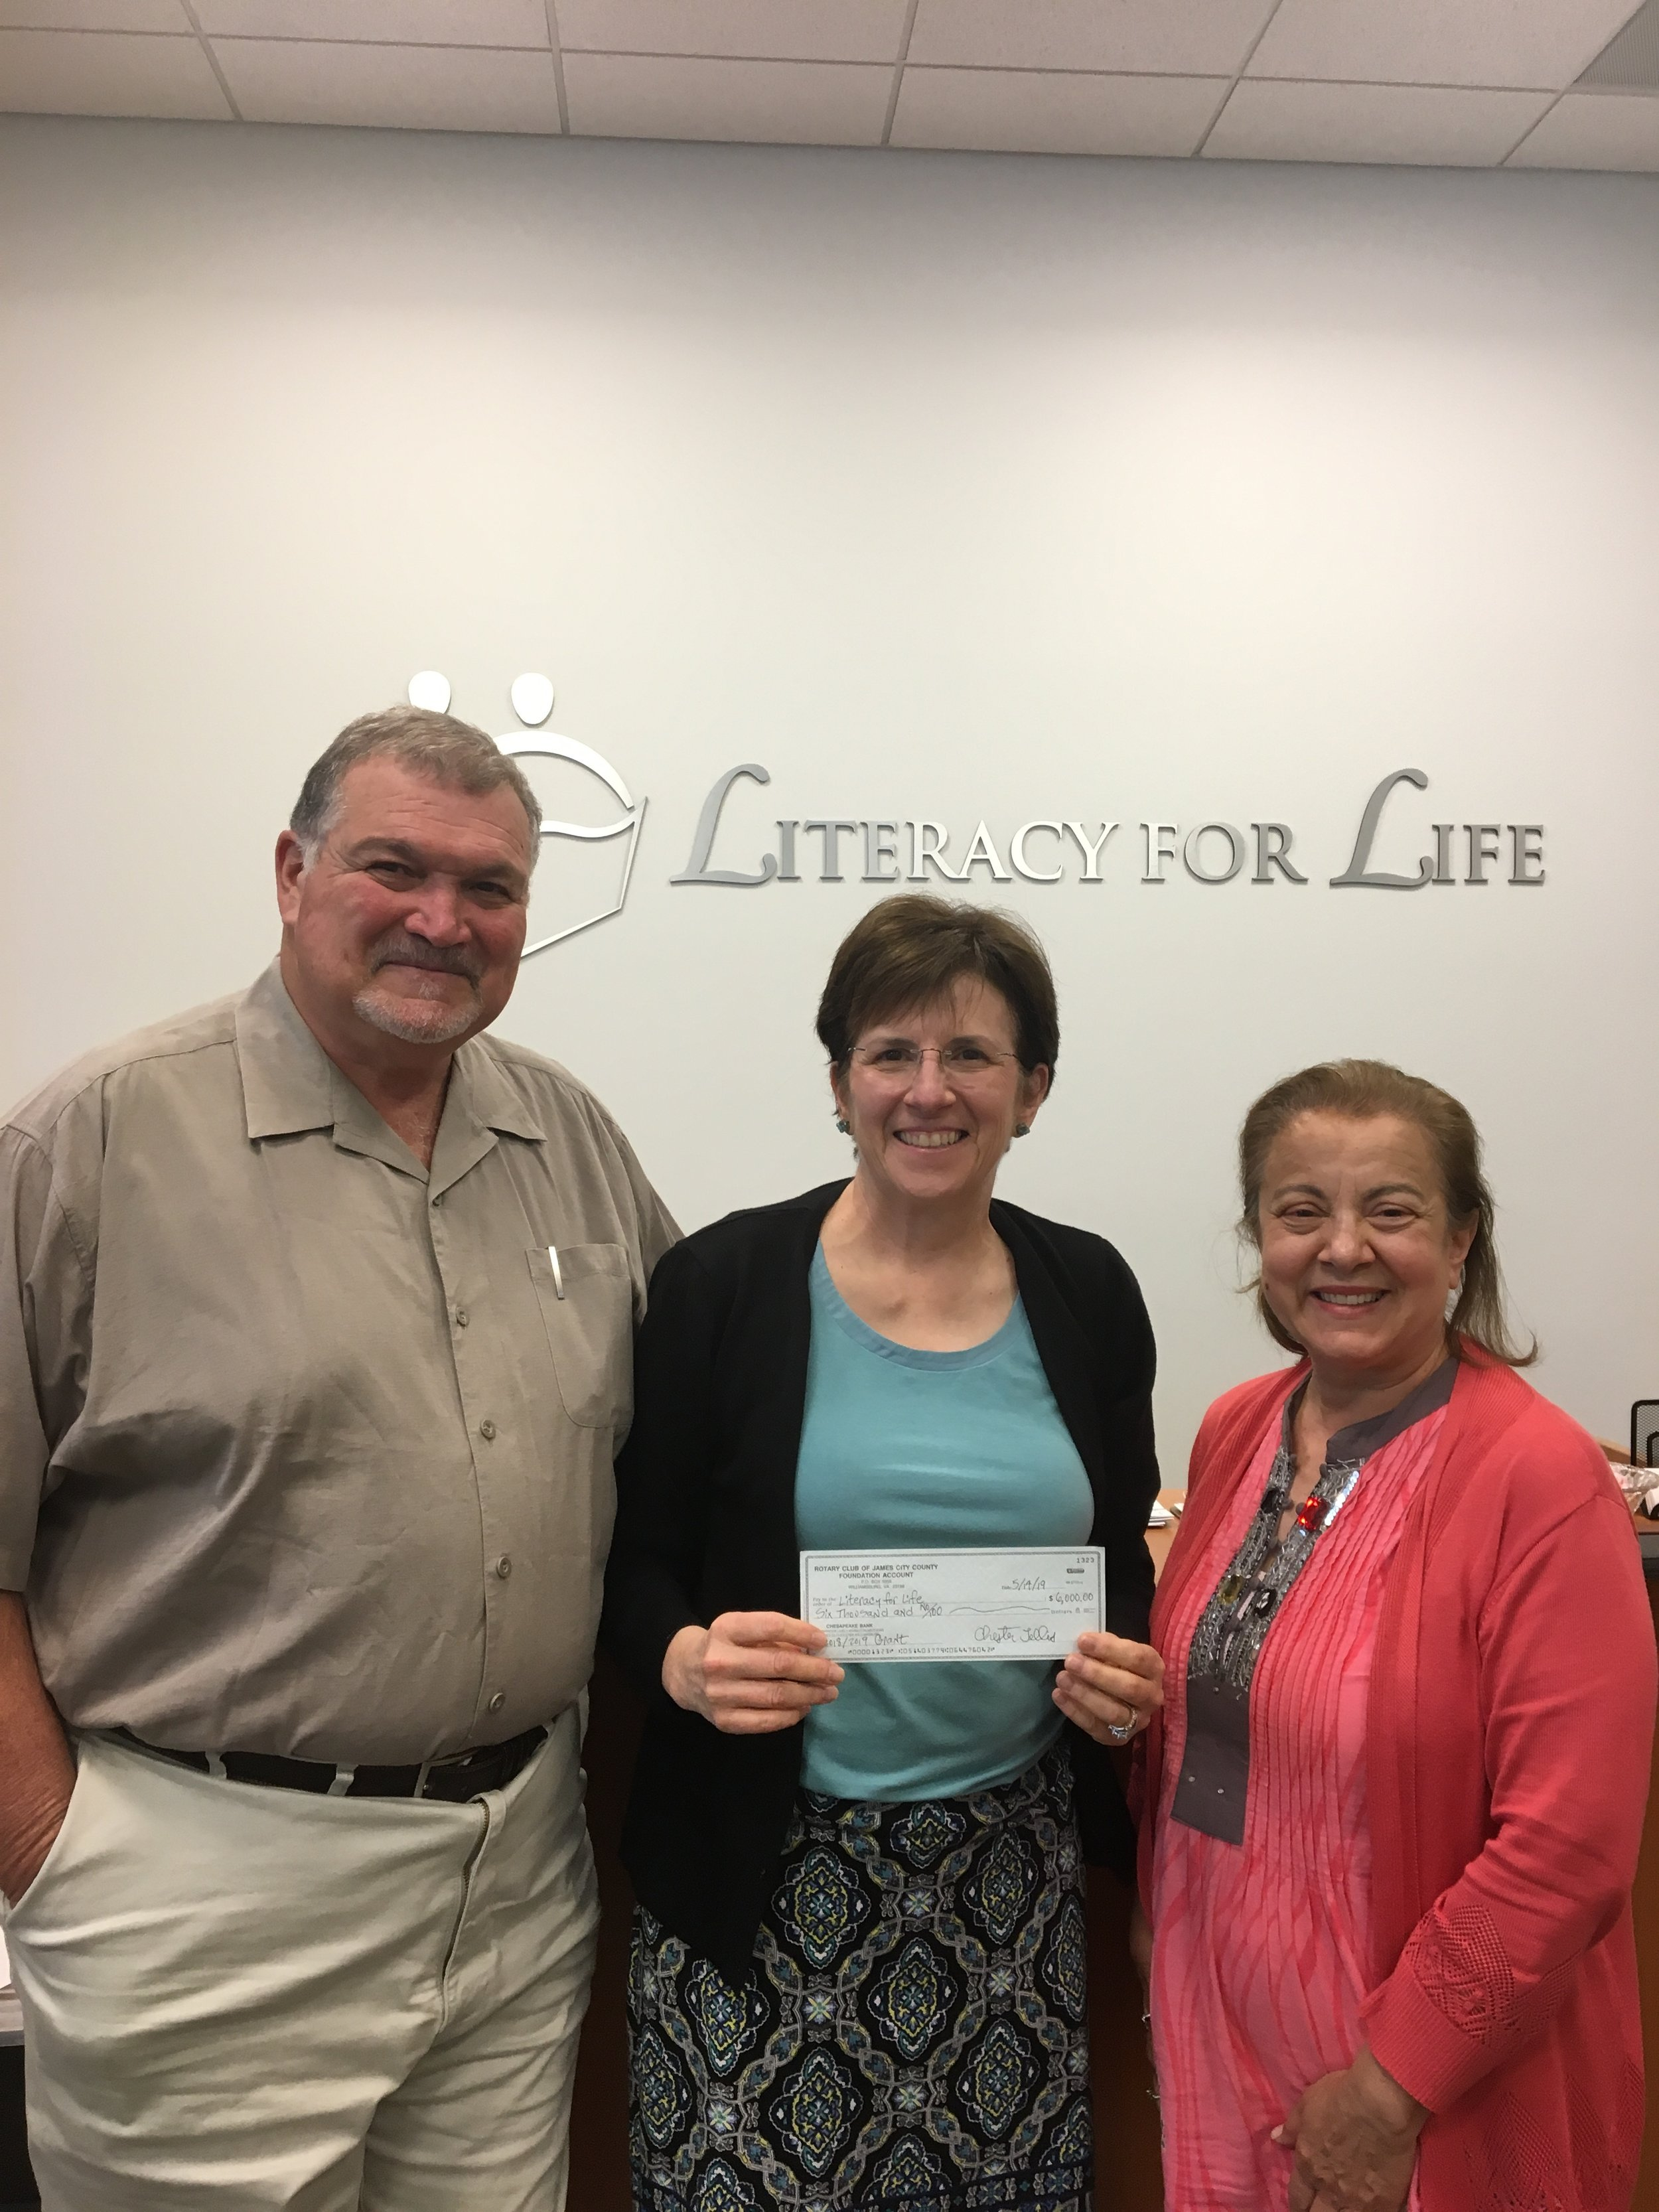 Our club support - Club members Sal and Carmelina Trifeletti present a donation check to Joan Peterson (center), Executive Director of Literacy for Life.